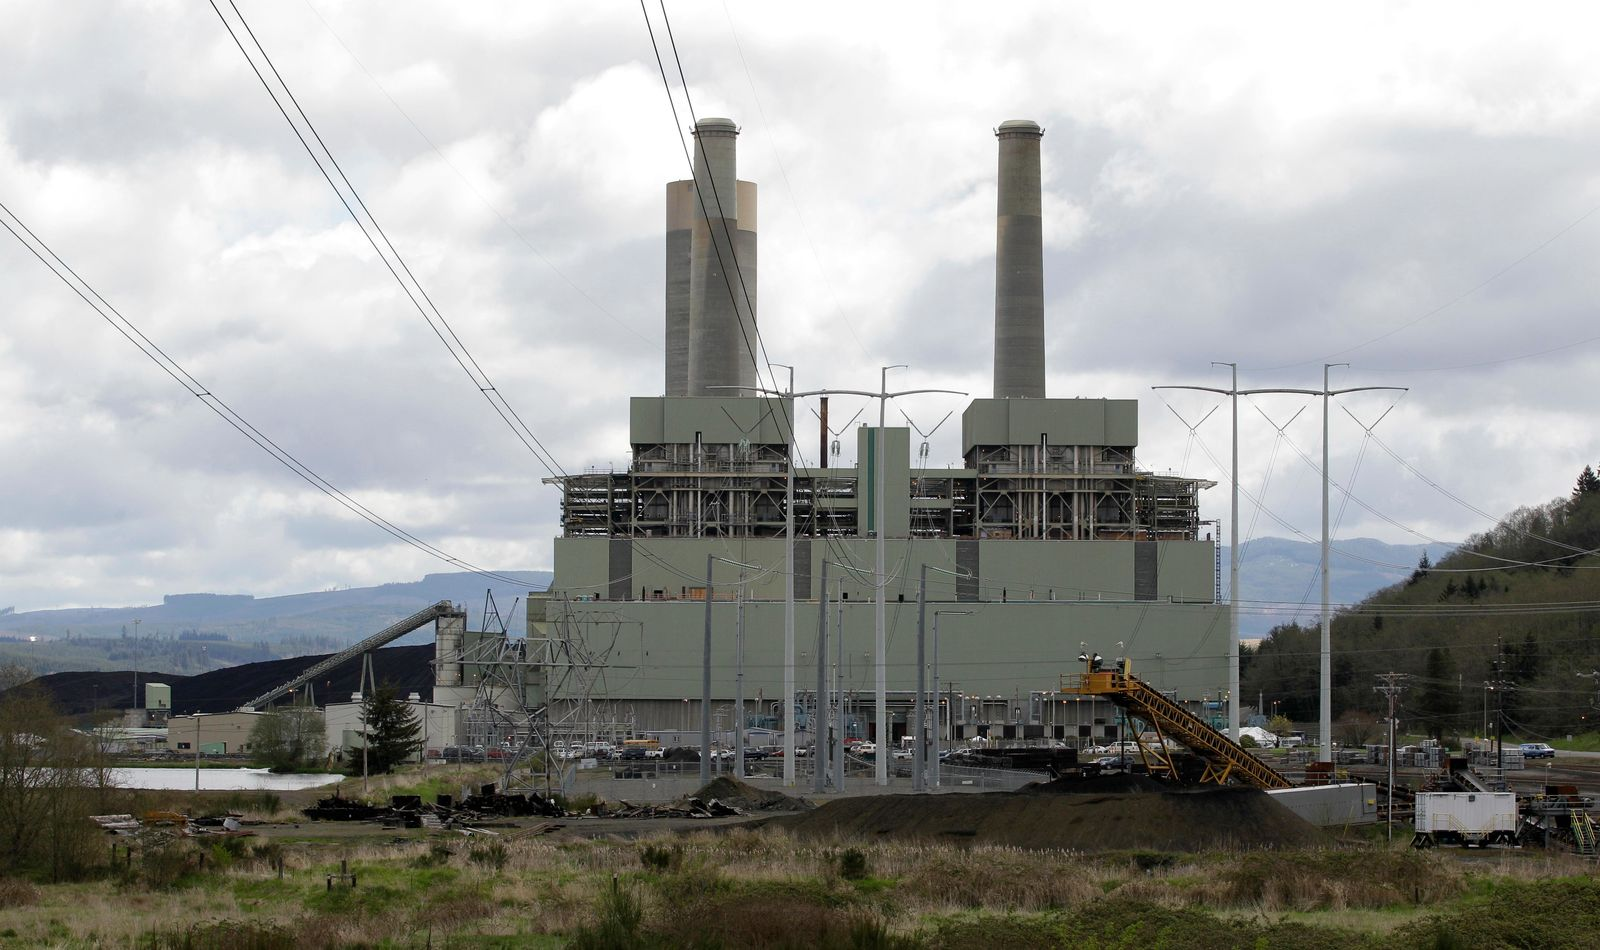 FILE - In this April 29, 2011, file photo, the coal-burning TransAlta power plant is shown near Centralia, Wash. (AP Photo/Ted S. Warren, File)